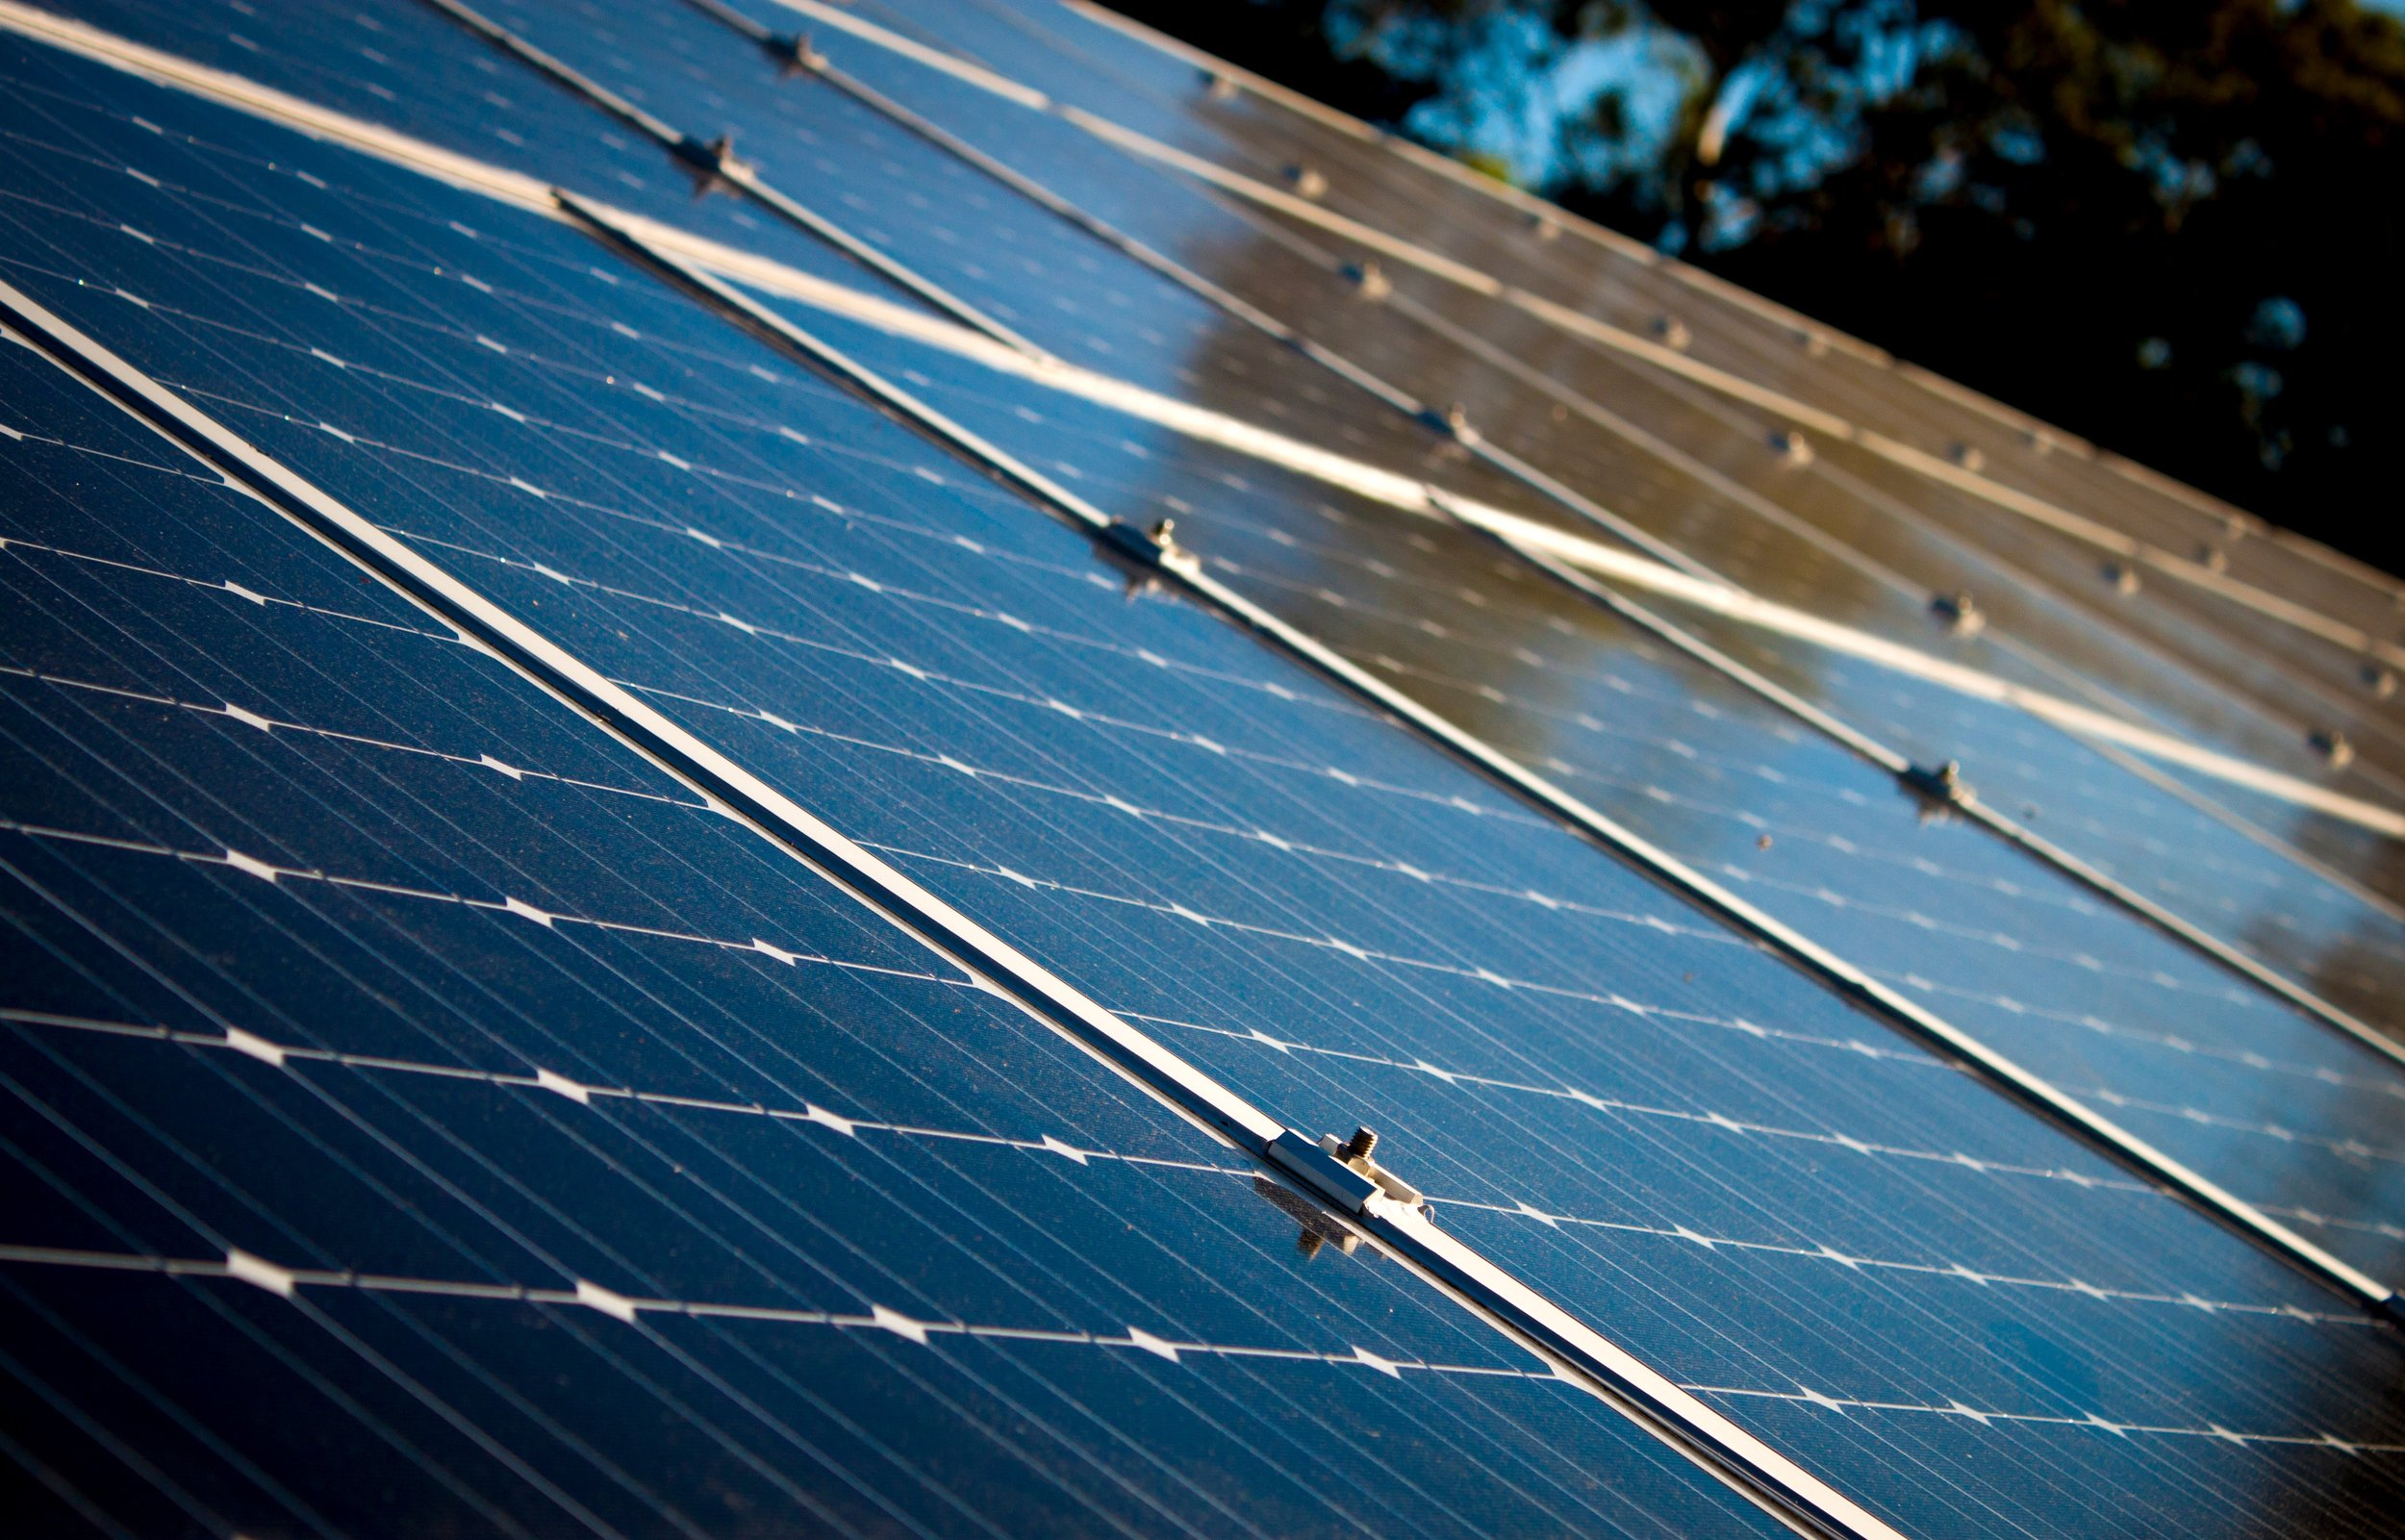 Solar PV panels generating 5KW of solar electricity